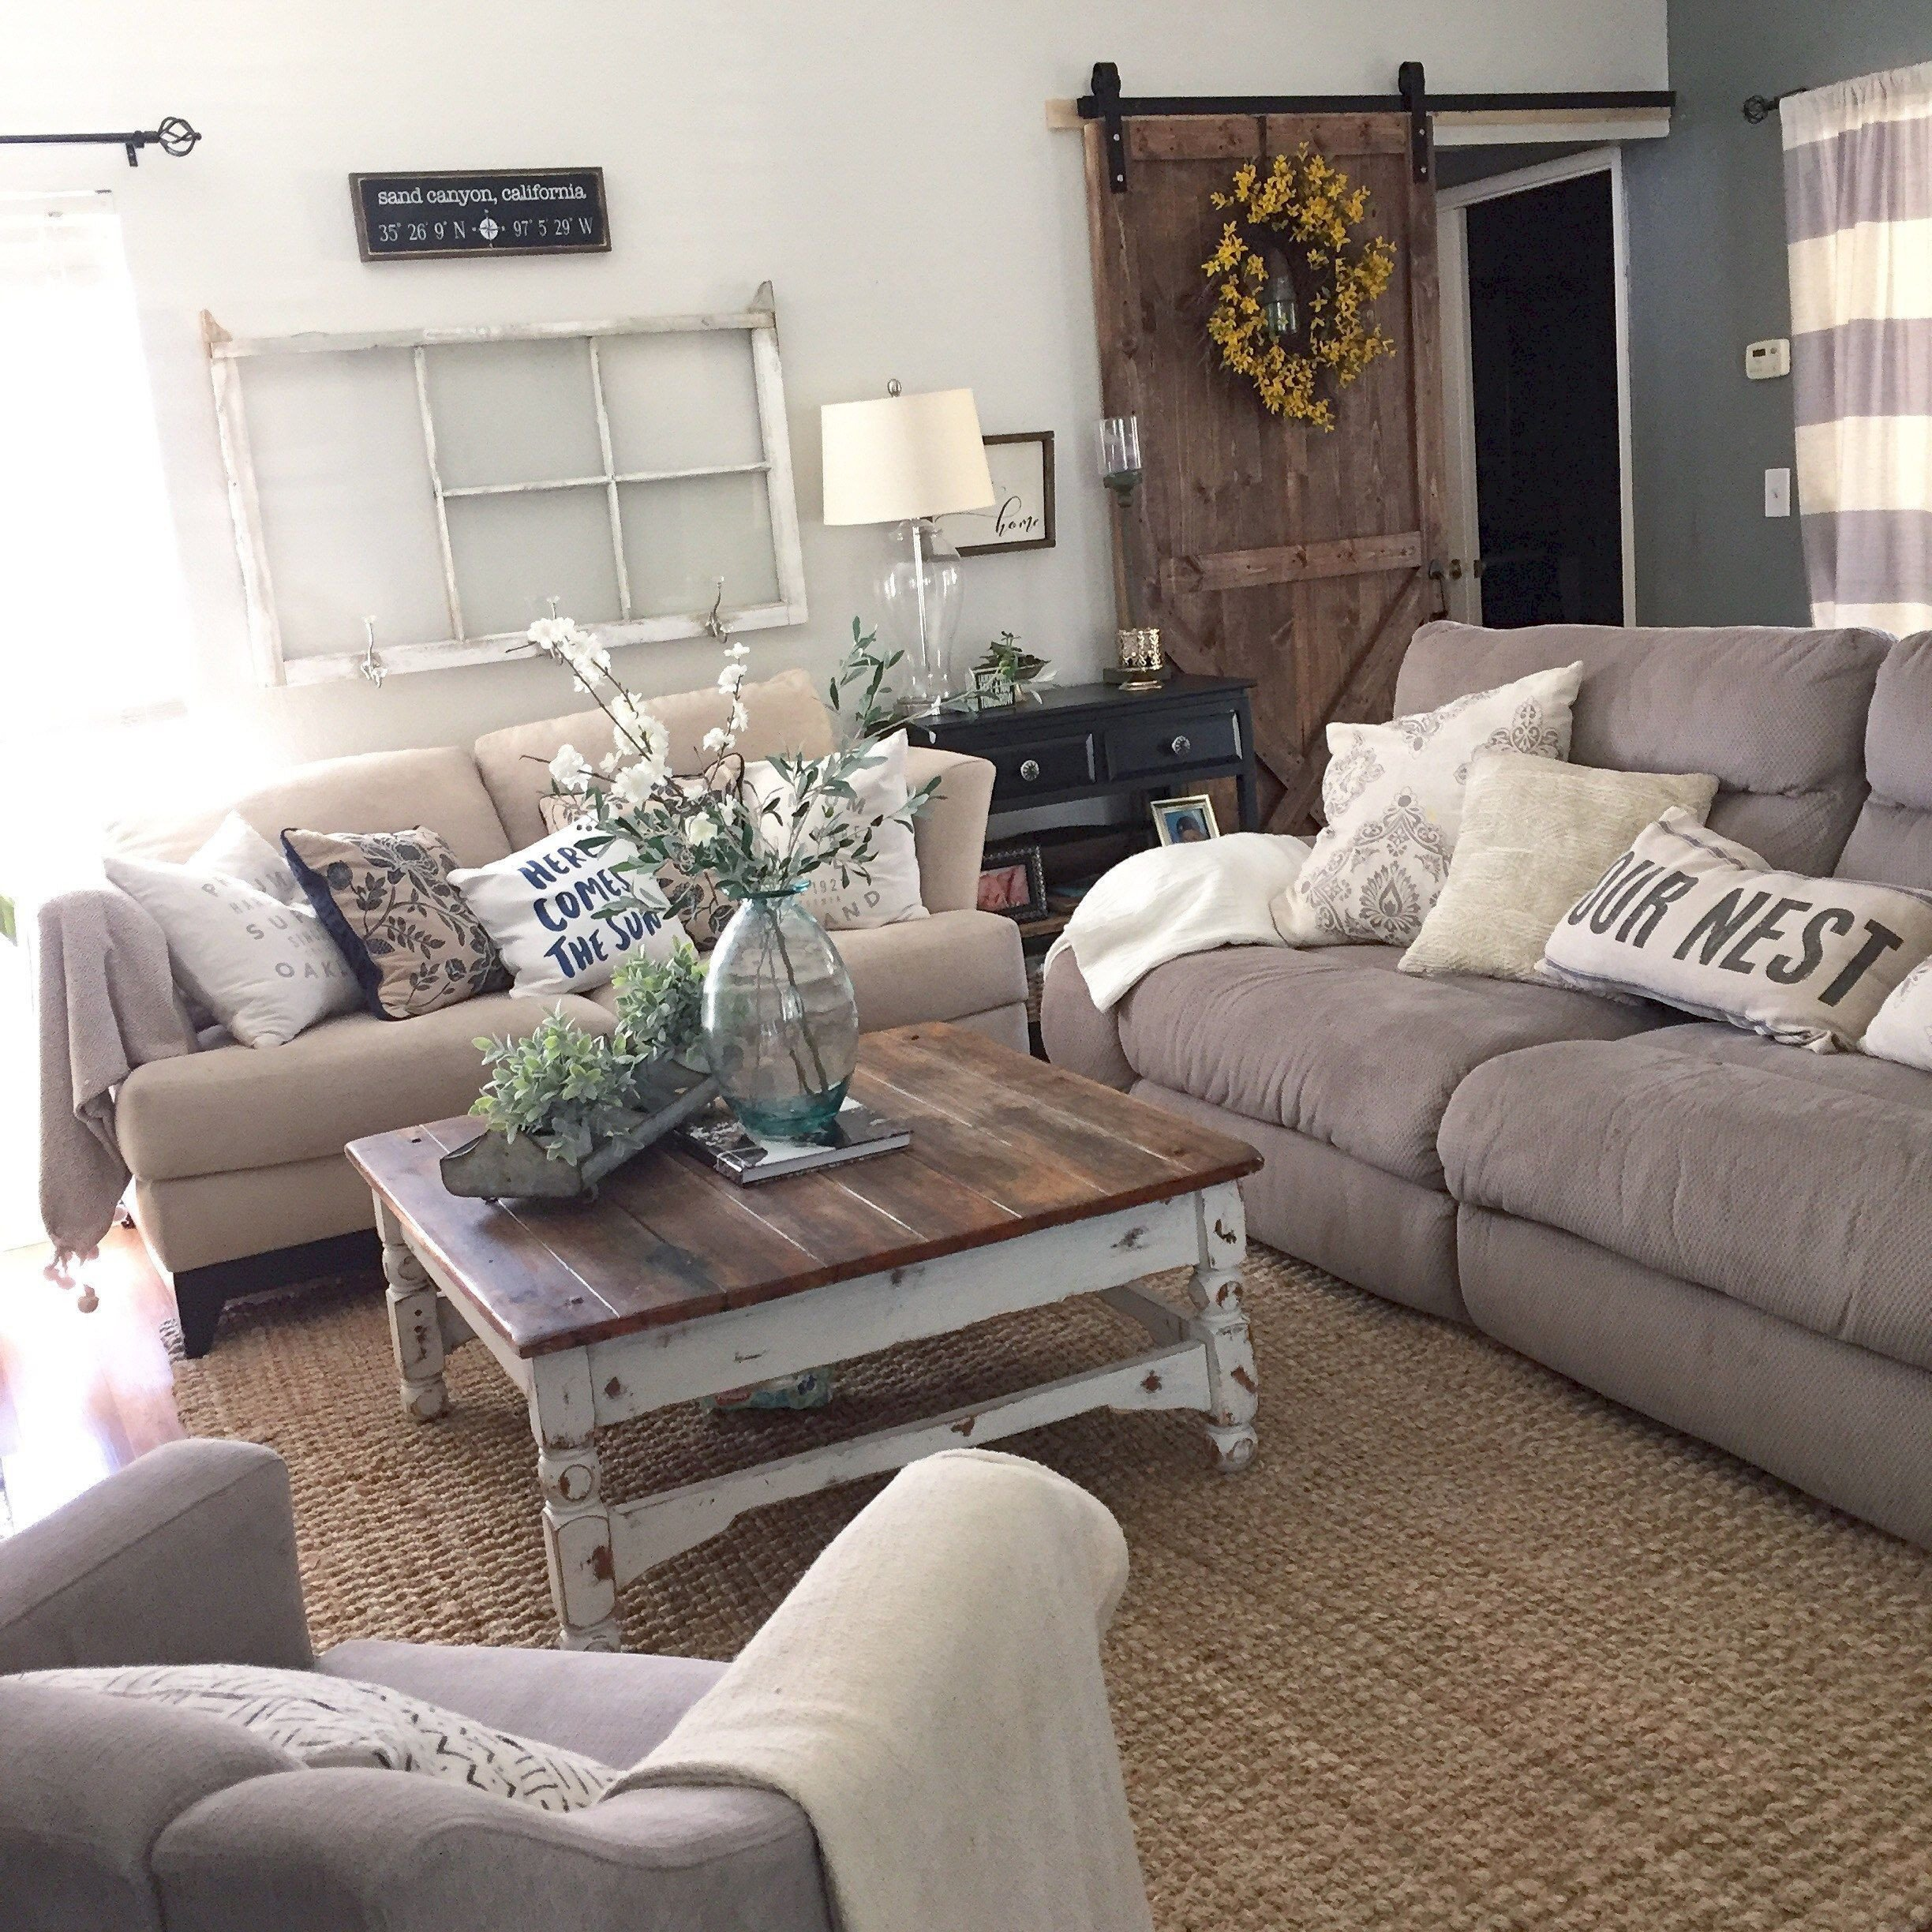 Country Chic Living Room Decor top 11 Incredible Cozy and Rustic Chic Living Room for